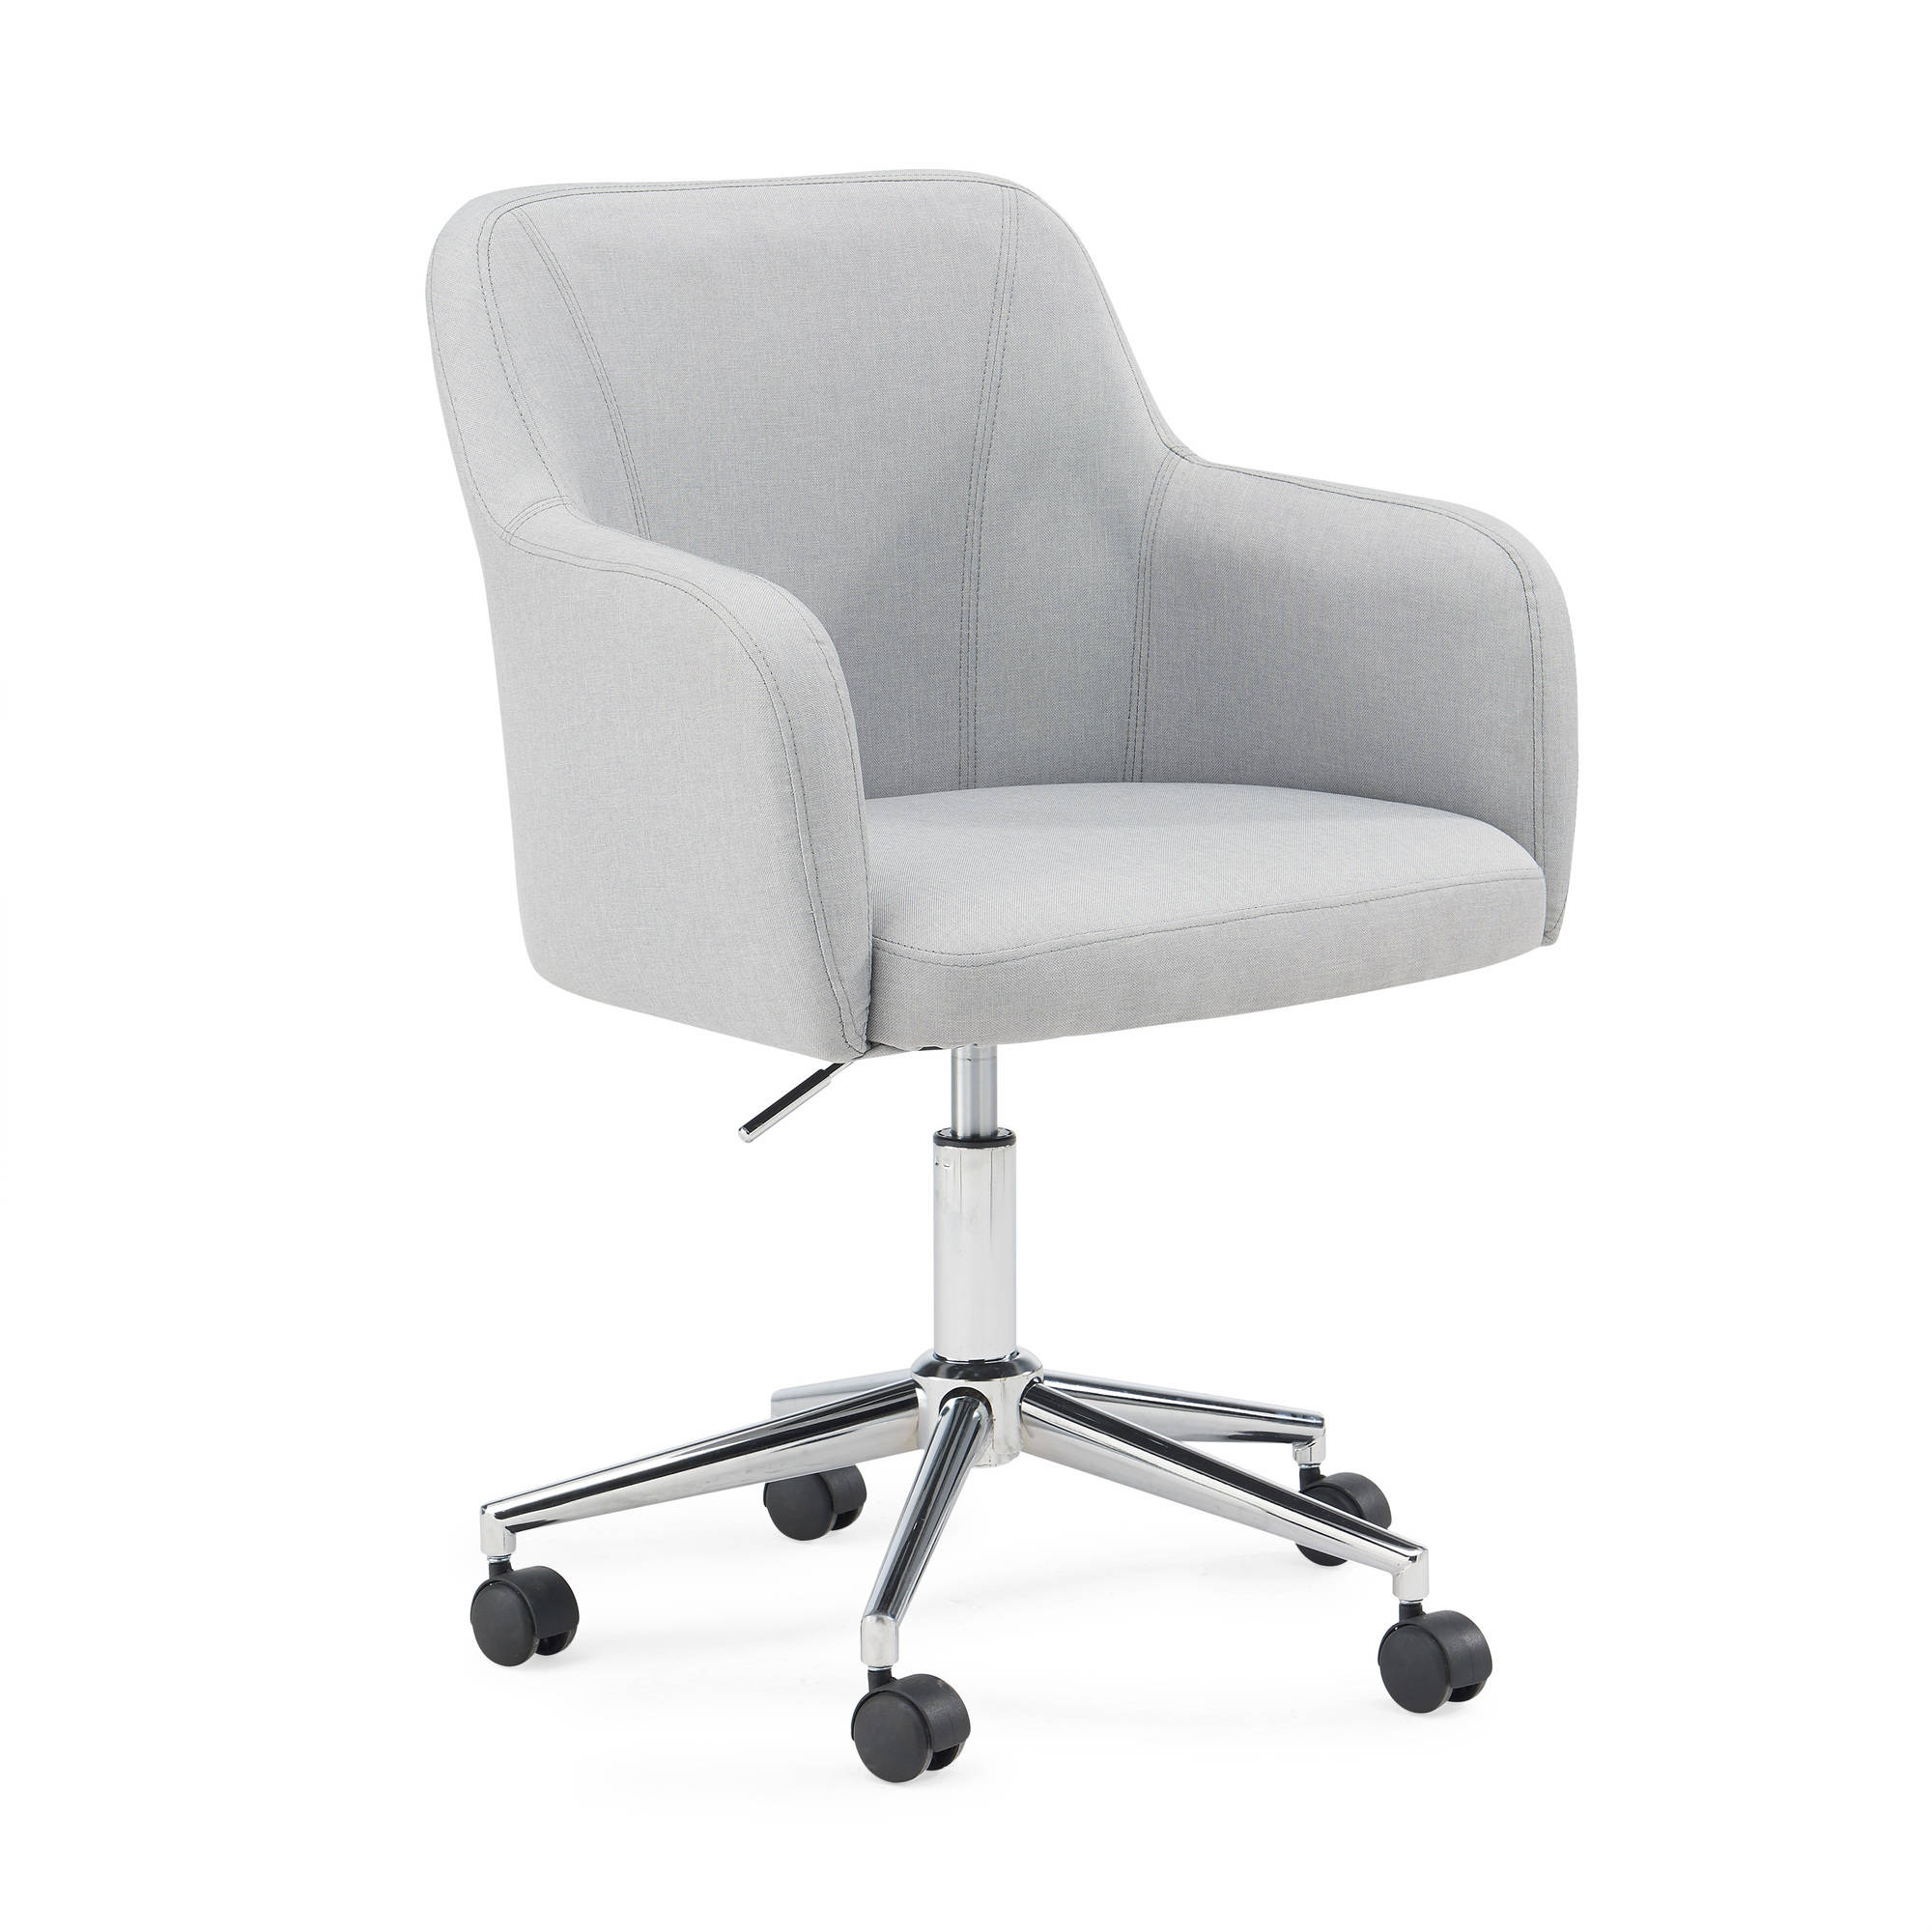 Mainstays Upholstered Low Back Office Chair, Multiple Colors